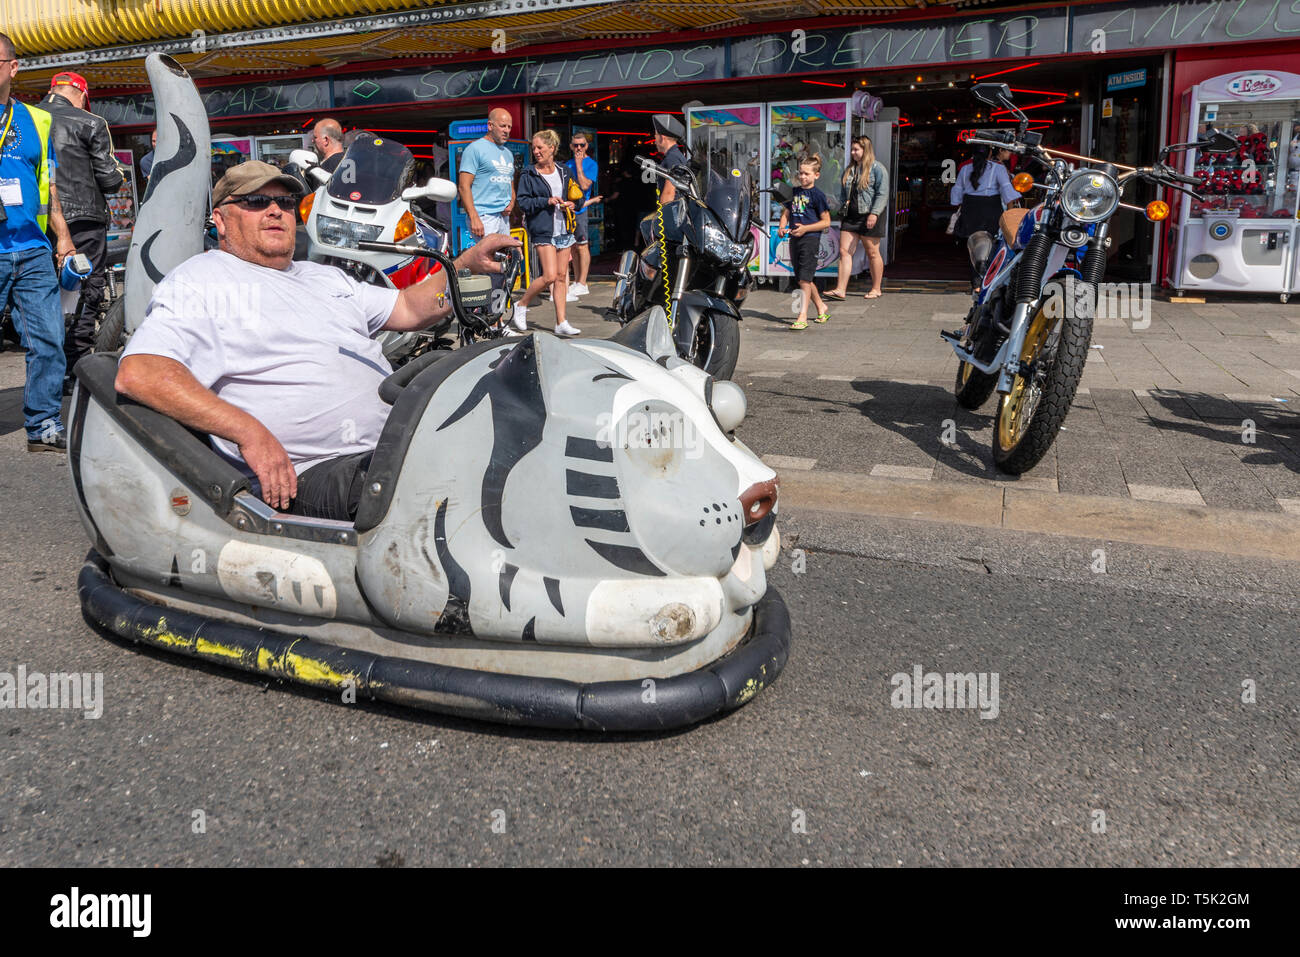 custom-dodgem-car-motorcycle-at-the-southend-shakedown-motorcycle-rally-southend-on-sea-essex-uk-space-for-copy-T5K2GM.jpg